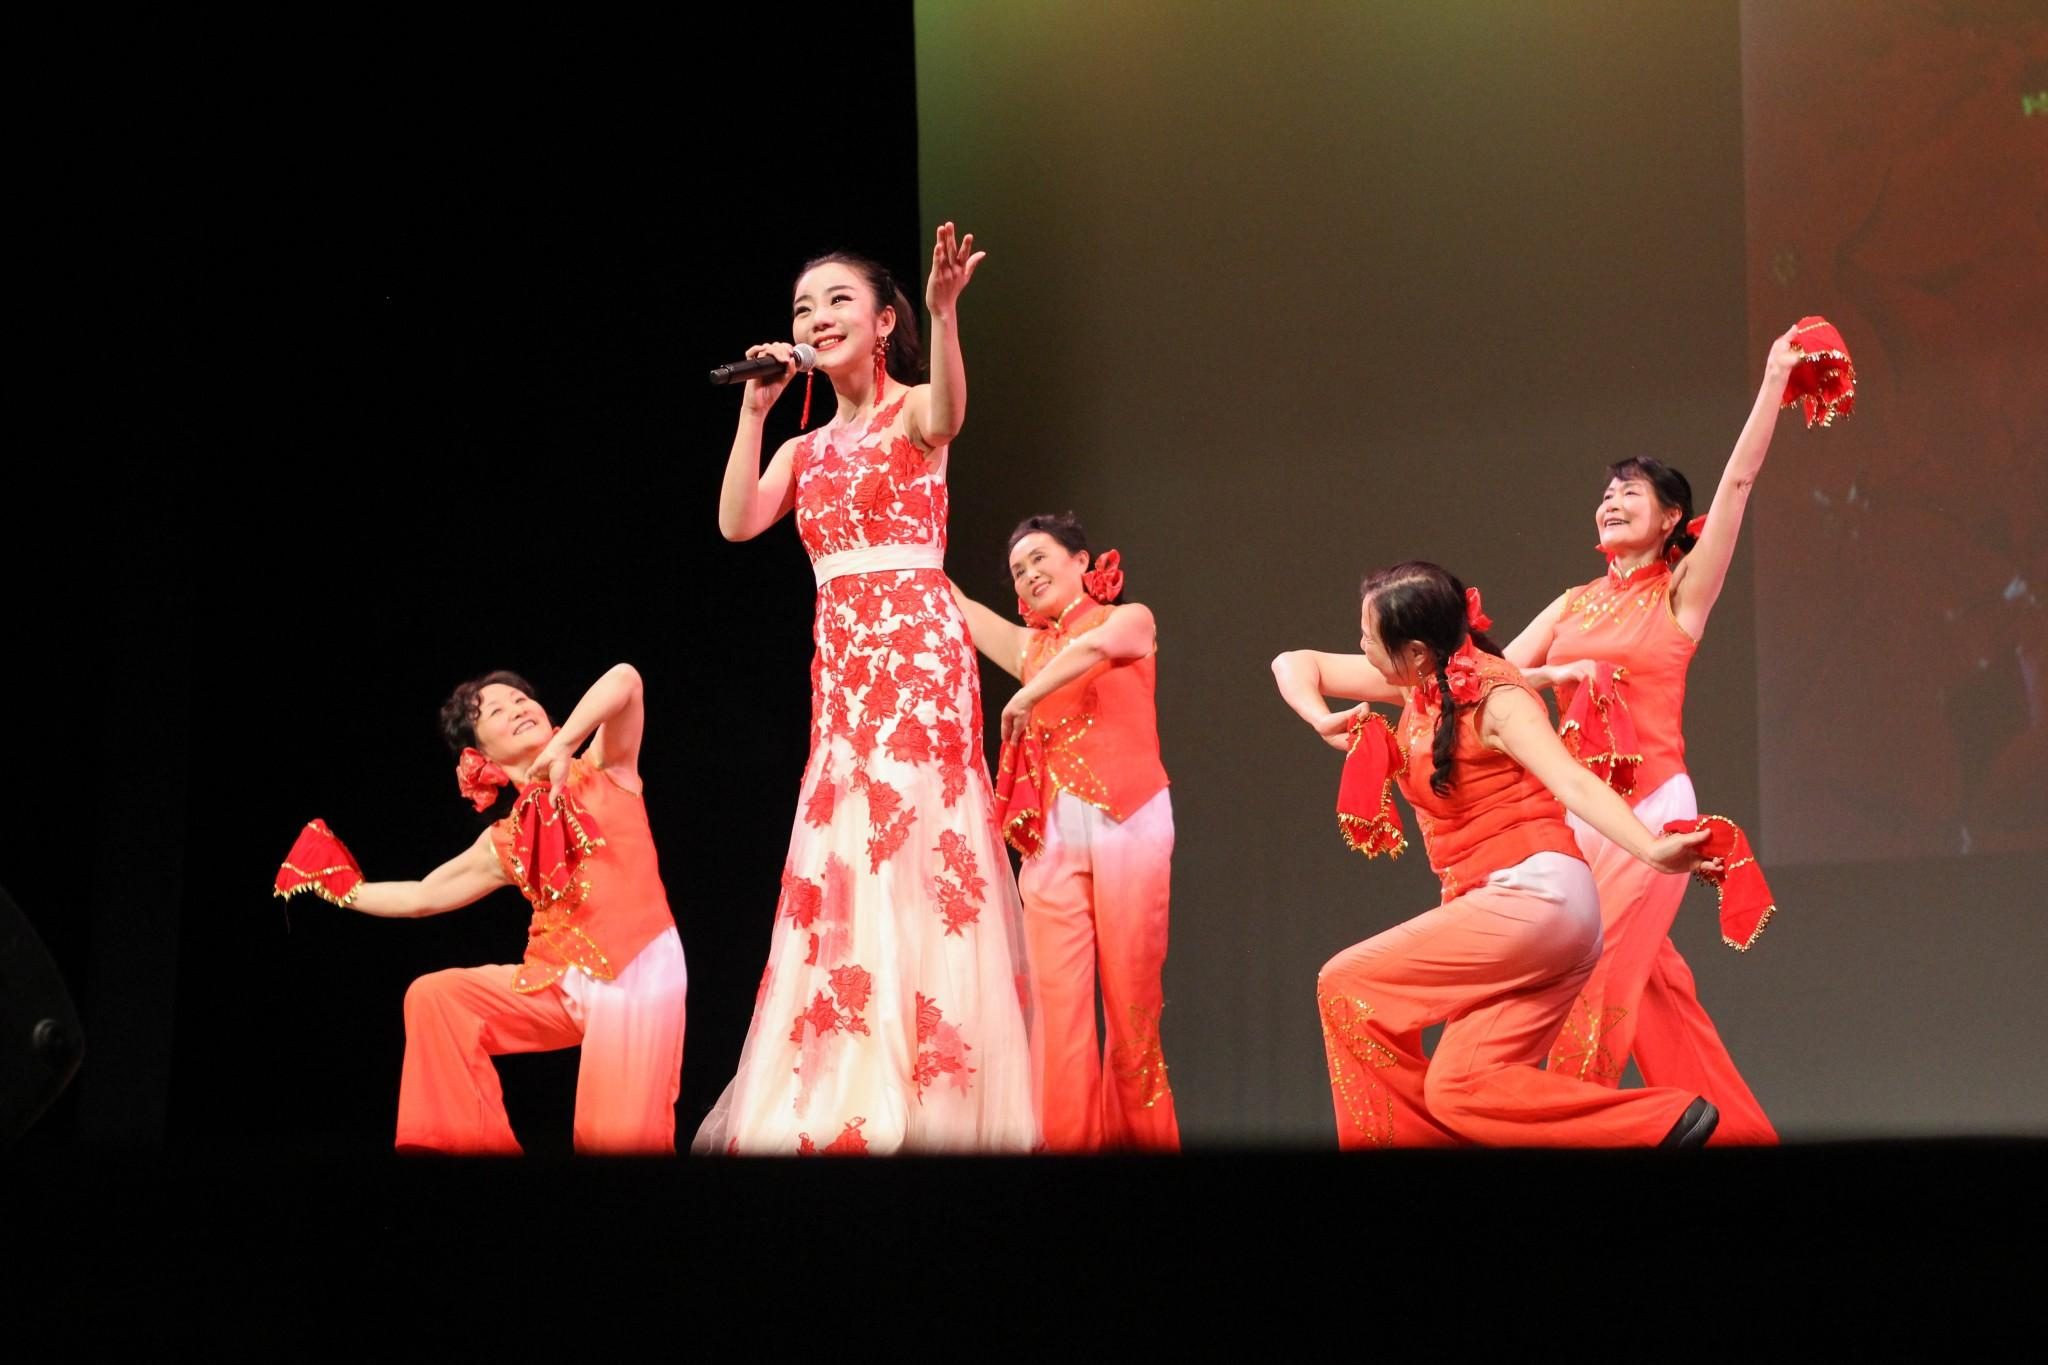 Cheng Xie performs a song in Mandarin at the 2016 Chinese Spring Festival Gala, accompanied by dancers Leyi Chen, Lin Zhang, Hong Wang and Yuexia Dou. The Fort Collins community gathered at the Lincoln center Sunday, Jan. 31. Photo by Jenna Fischer.